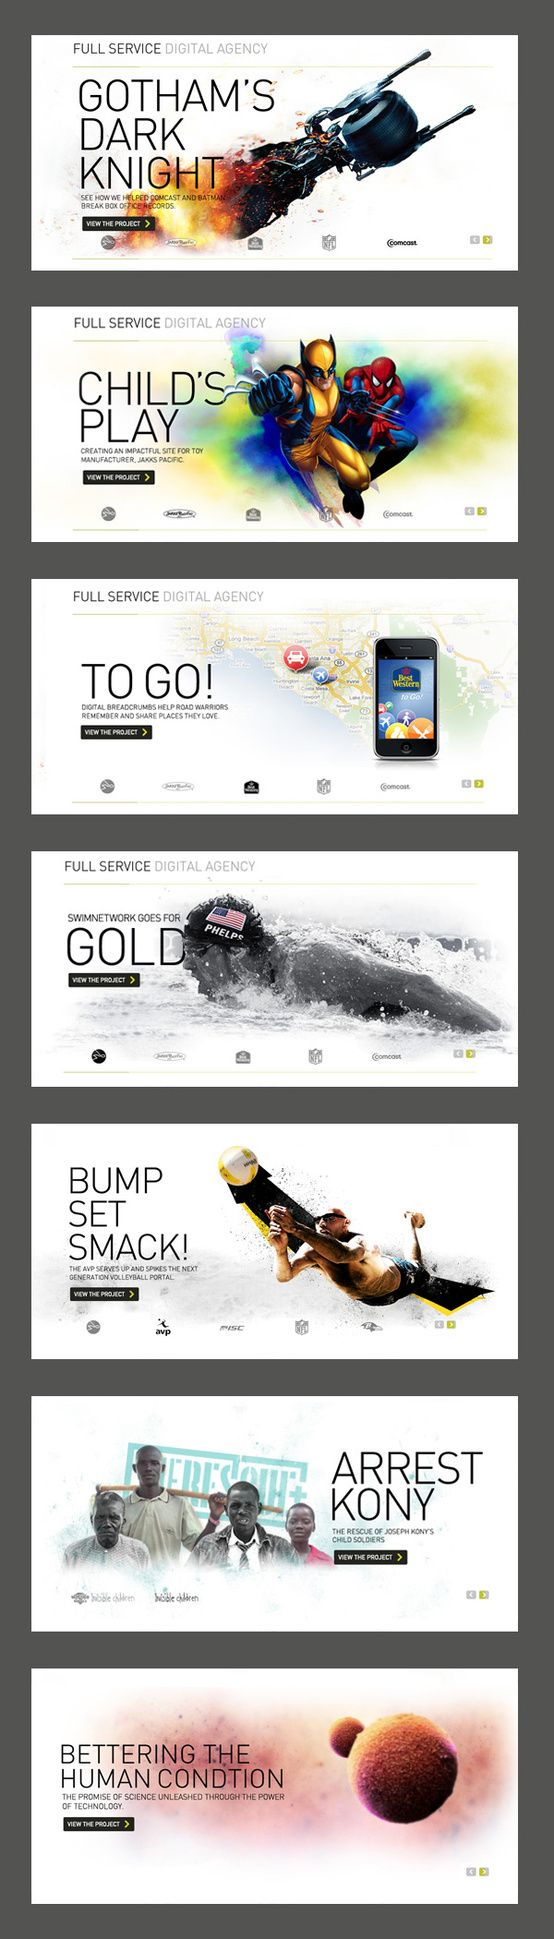 Full Service Digital Agency ~ http://themeforest.net/?ref=Vision7Studio more on http://html5themes.org